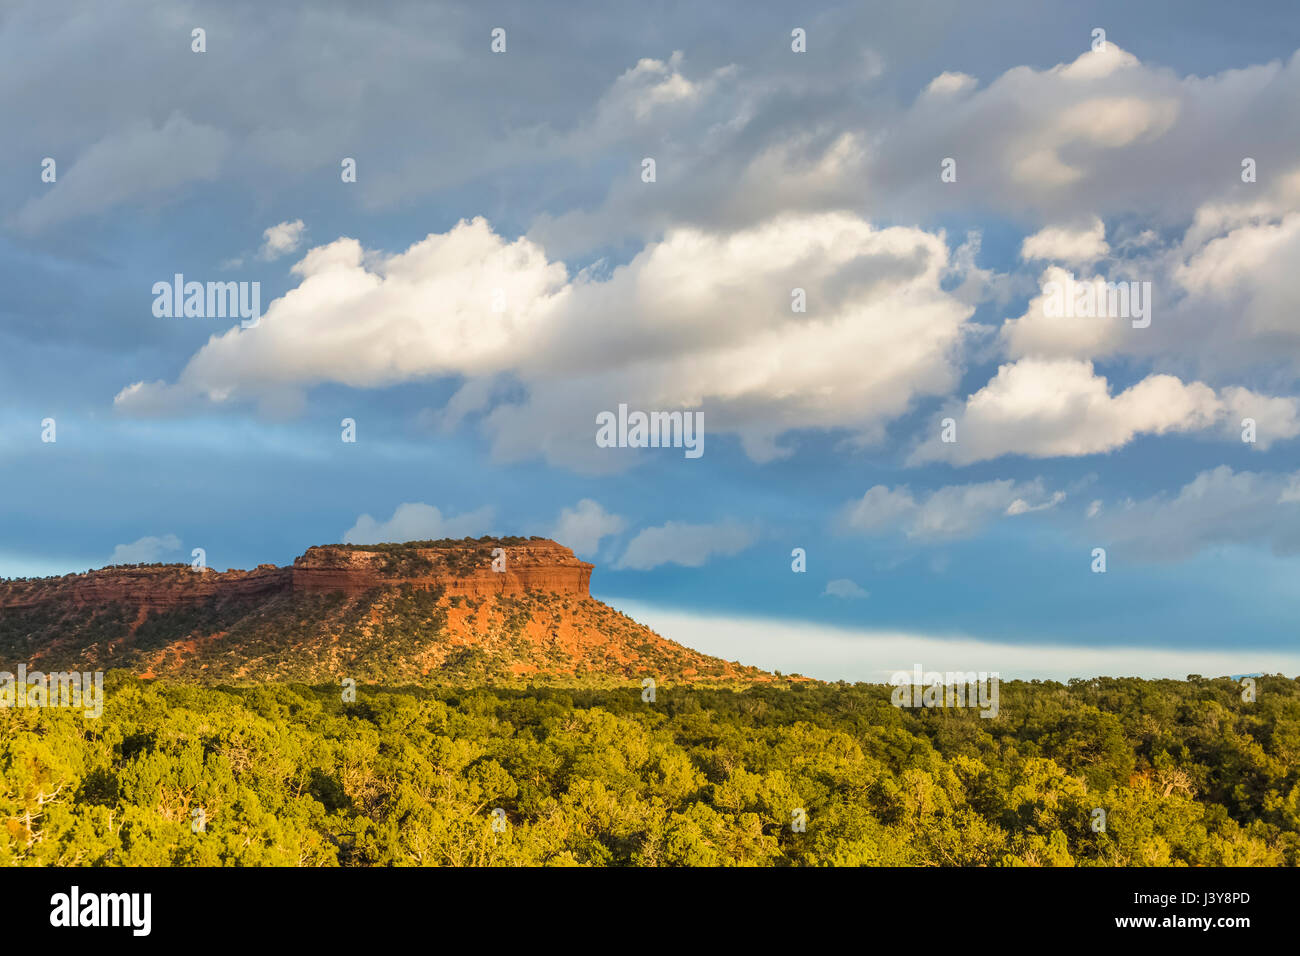 Mesa and pinyon-juniper forest in Bears Ears National Monument, southern Utah, USA Stock Photo